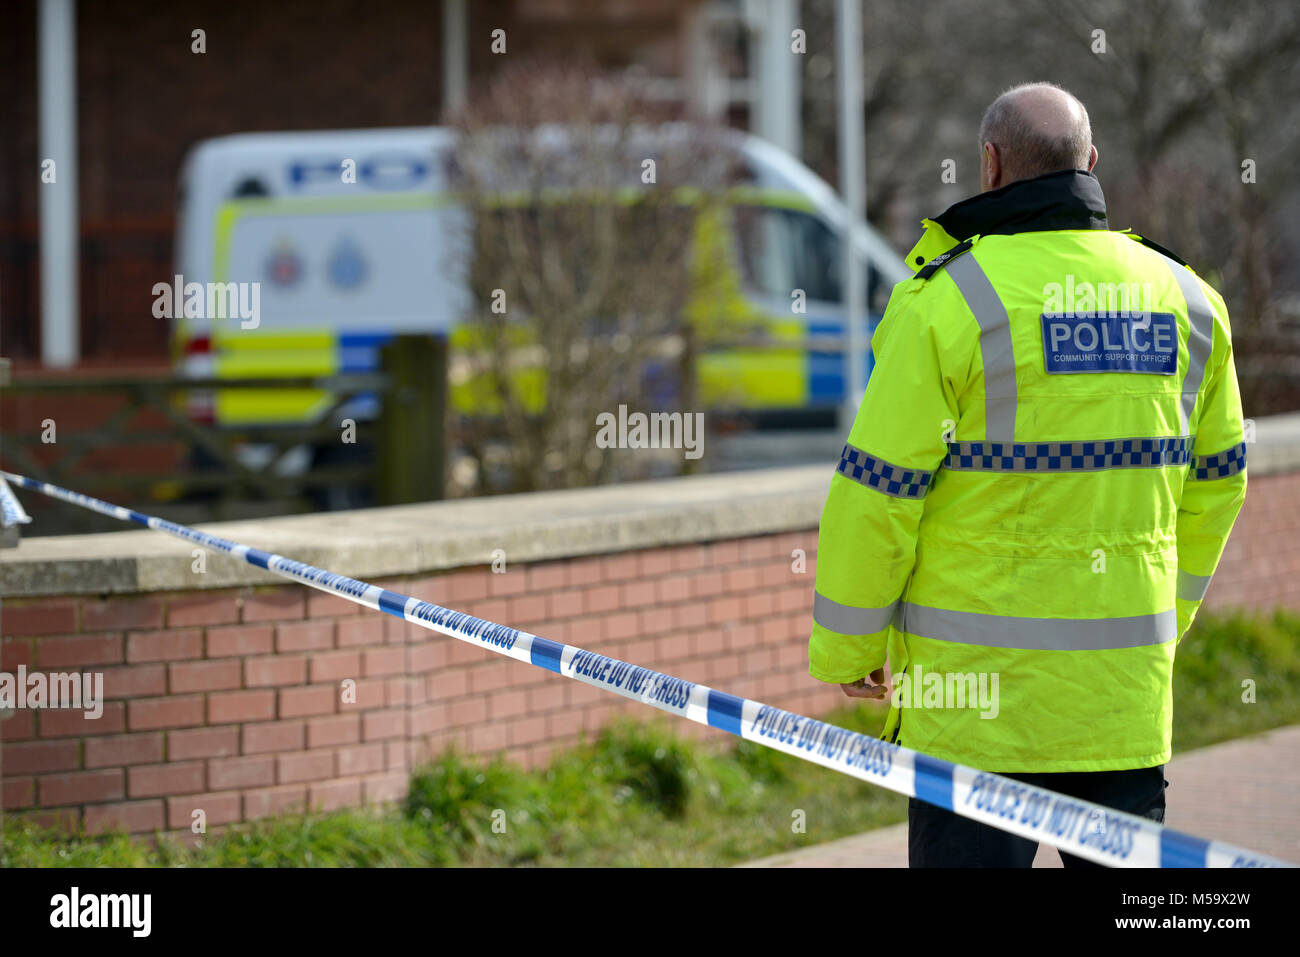 Lewes, East Sussex. 21st February 2018. Police cordon outside Tesco superstore in Lewes, East Sussex after an armed - Stock Image